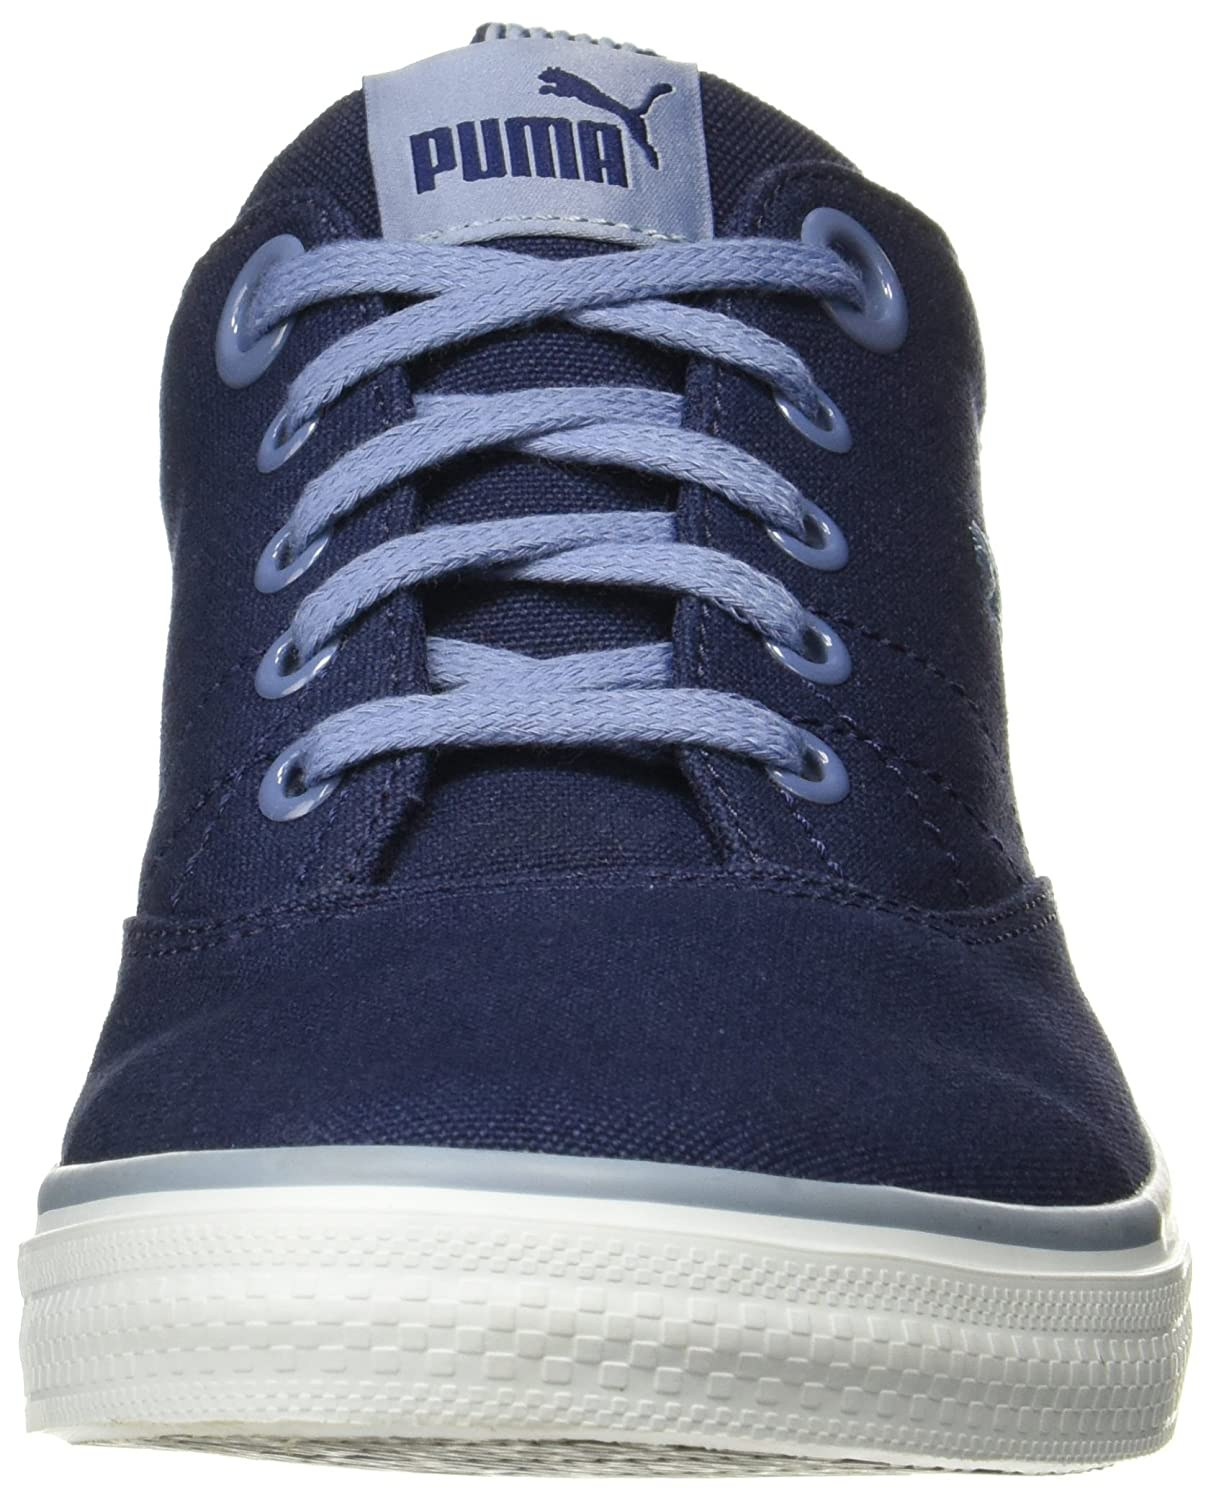 e3d868c8c5a Puma Unisex s Peacoat-Infinity Sneakers-11 UK India (46 EU) (36621607)  Buy  Online at Low Prices in India - Amazon.in